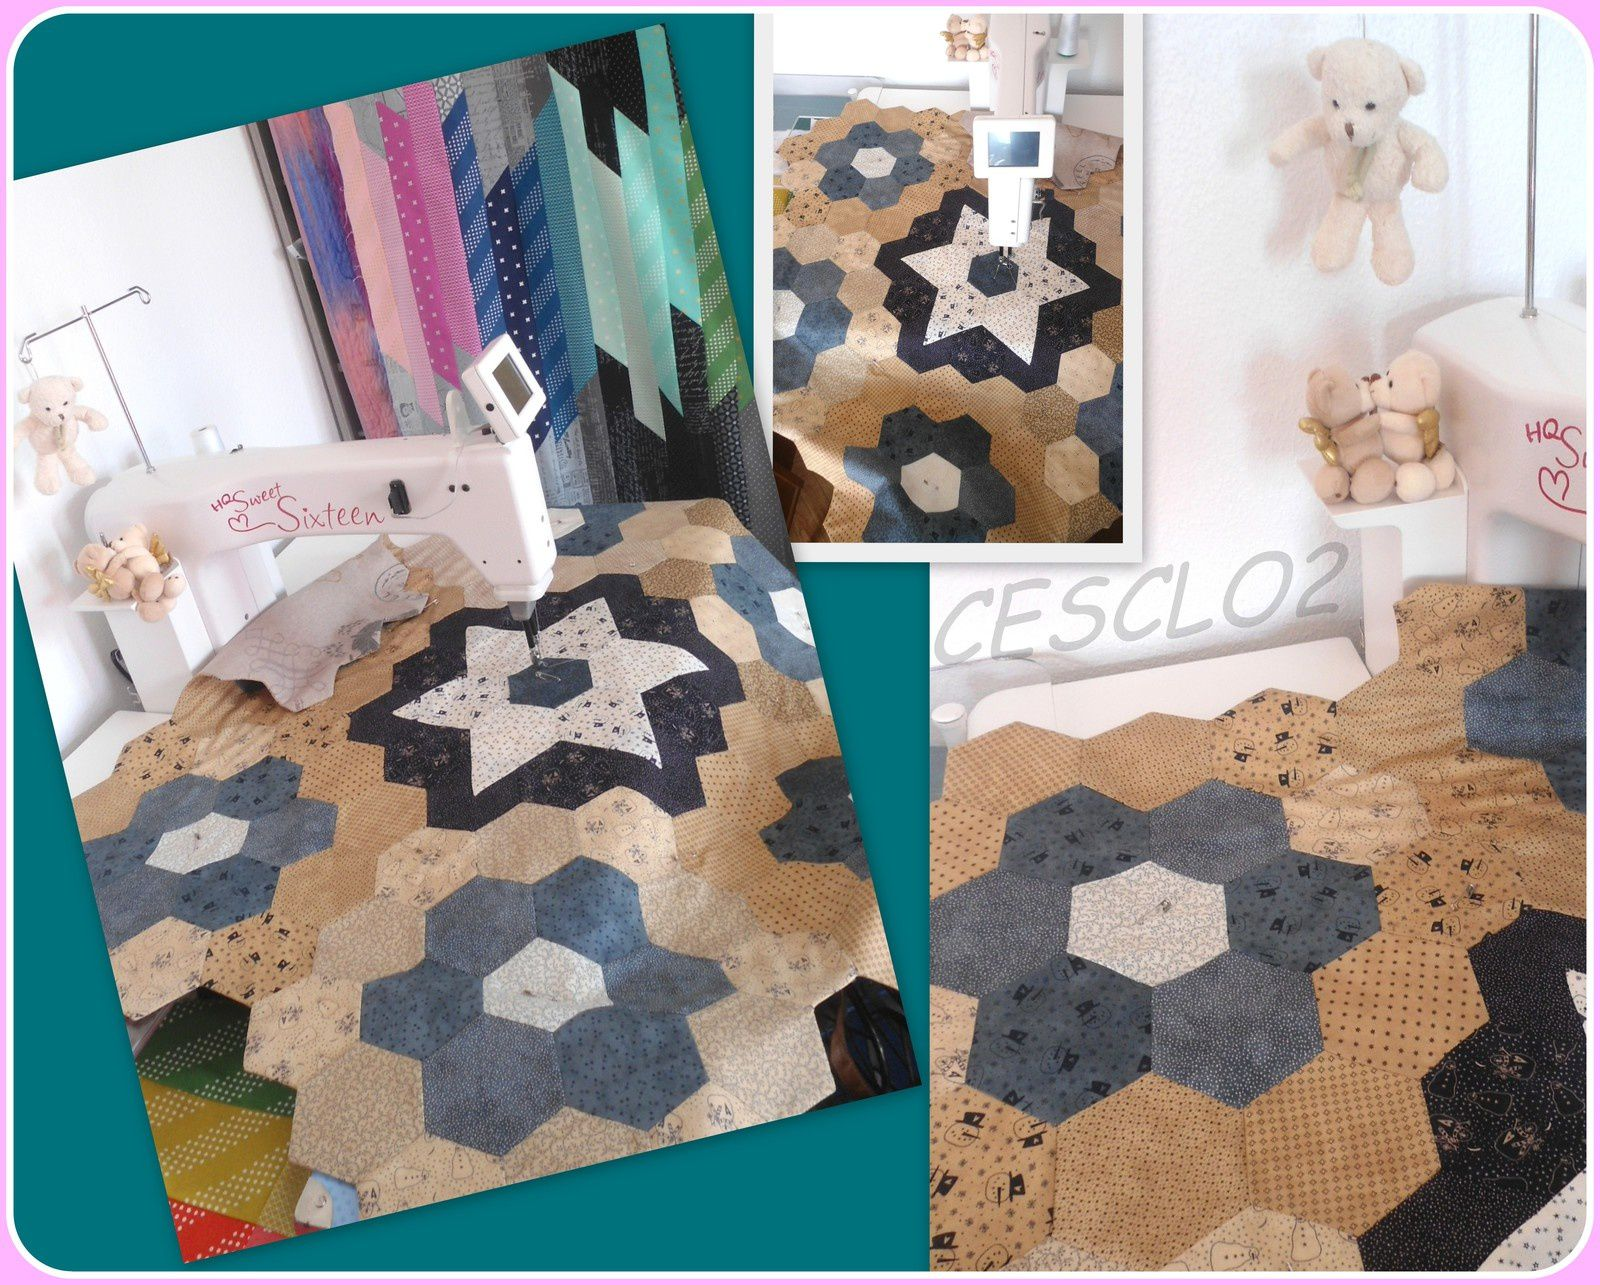 Hexagones en mode quilting